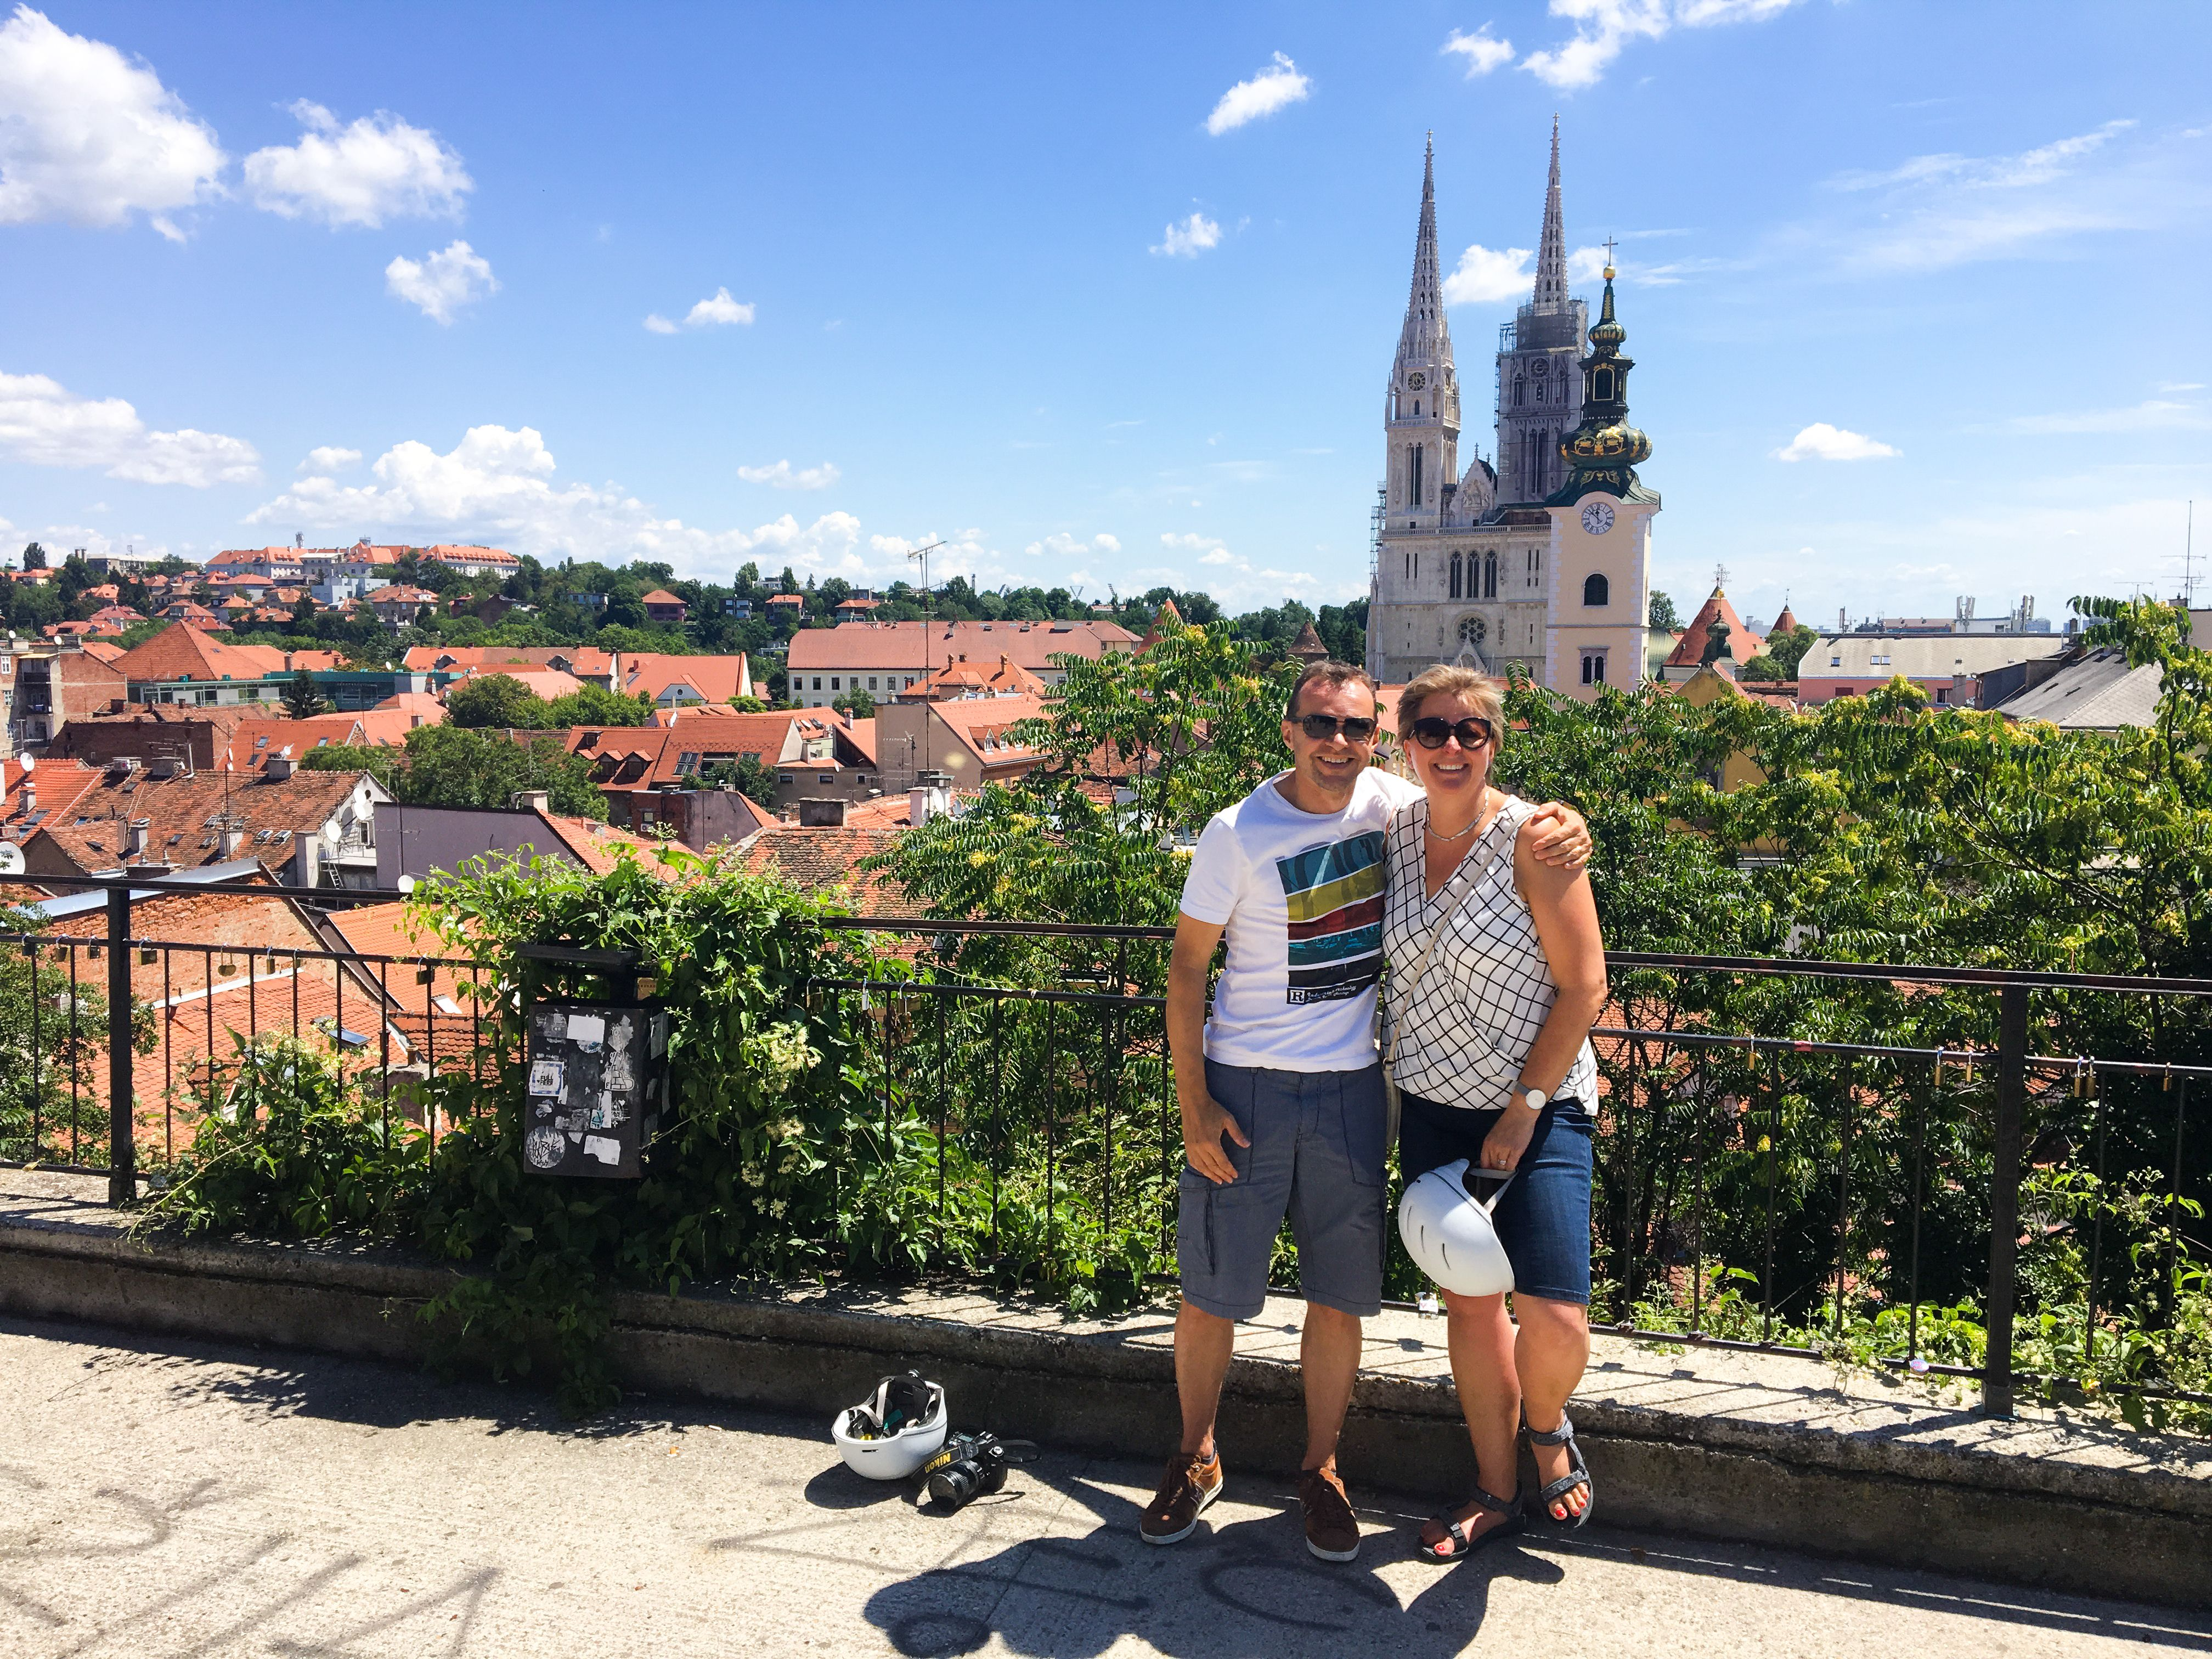 Zagreb Upper Town Has A Lot Of Spots With Nice View Upon The City One Of Those Is Plateau Gradec Lobagolabnb Zagreb Gradec Upper La Tours Bike Tour Zagreb